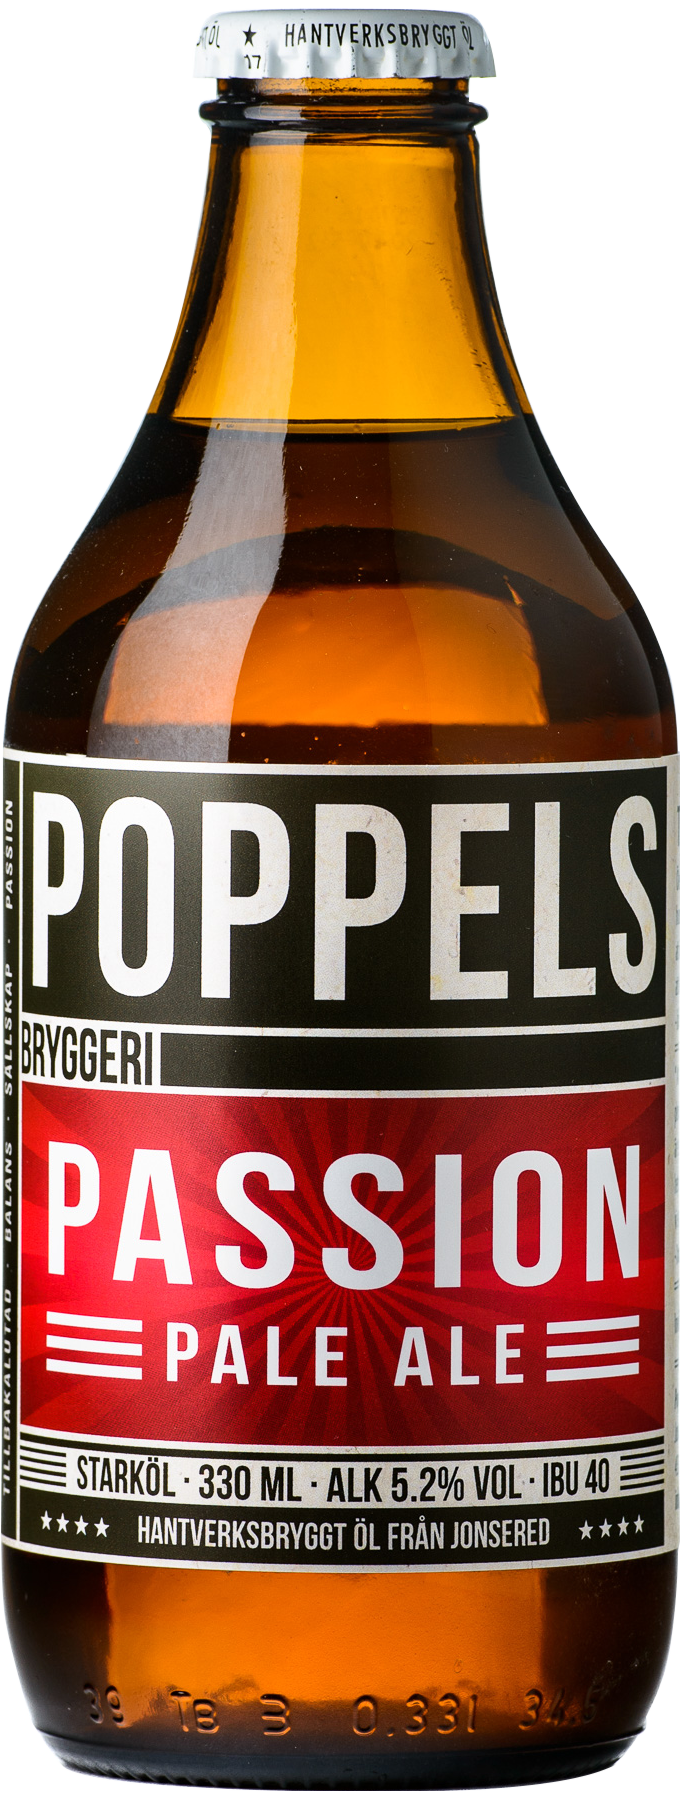 Passion Pale Ale